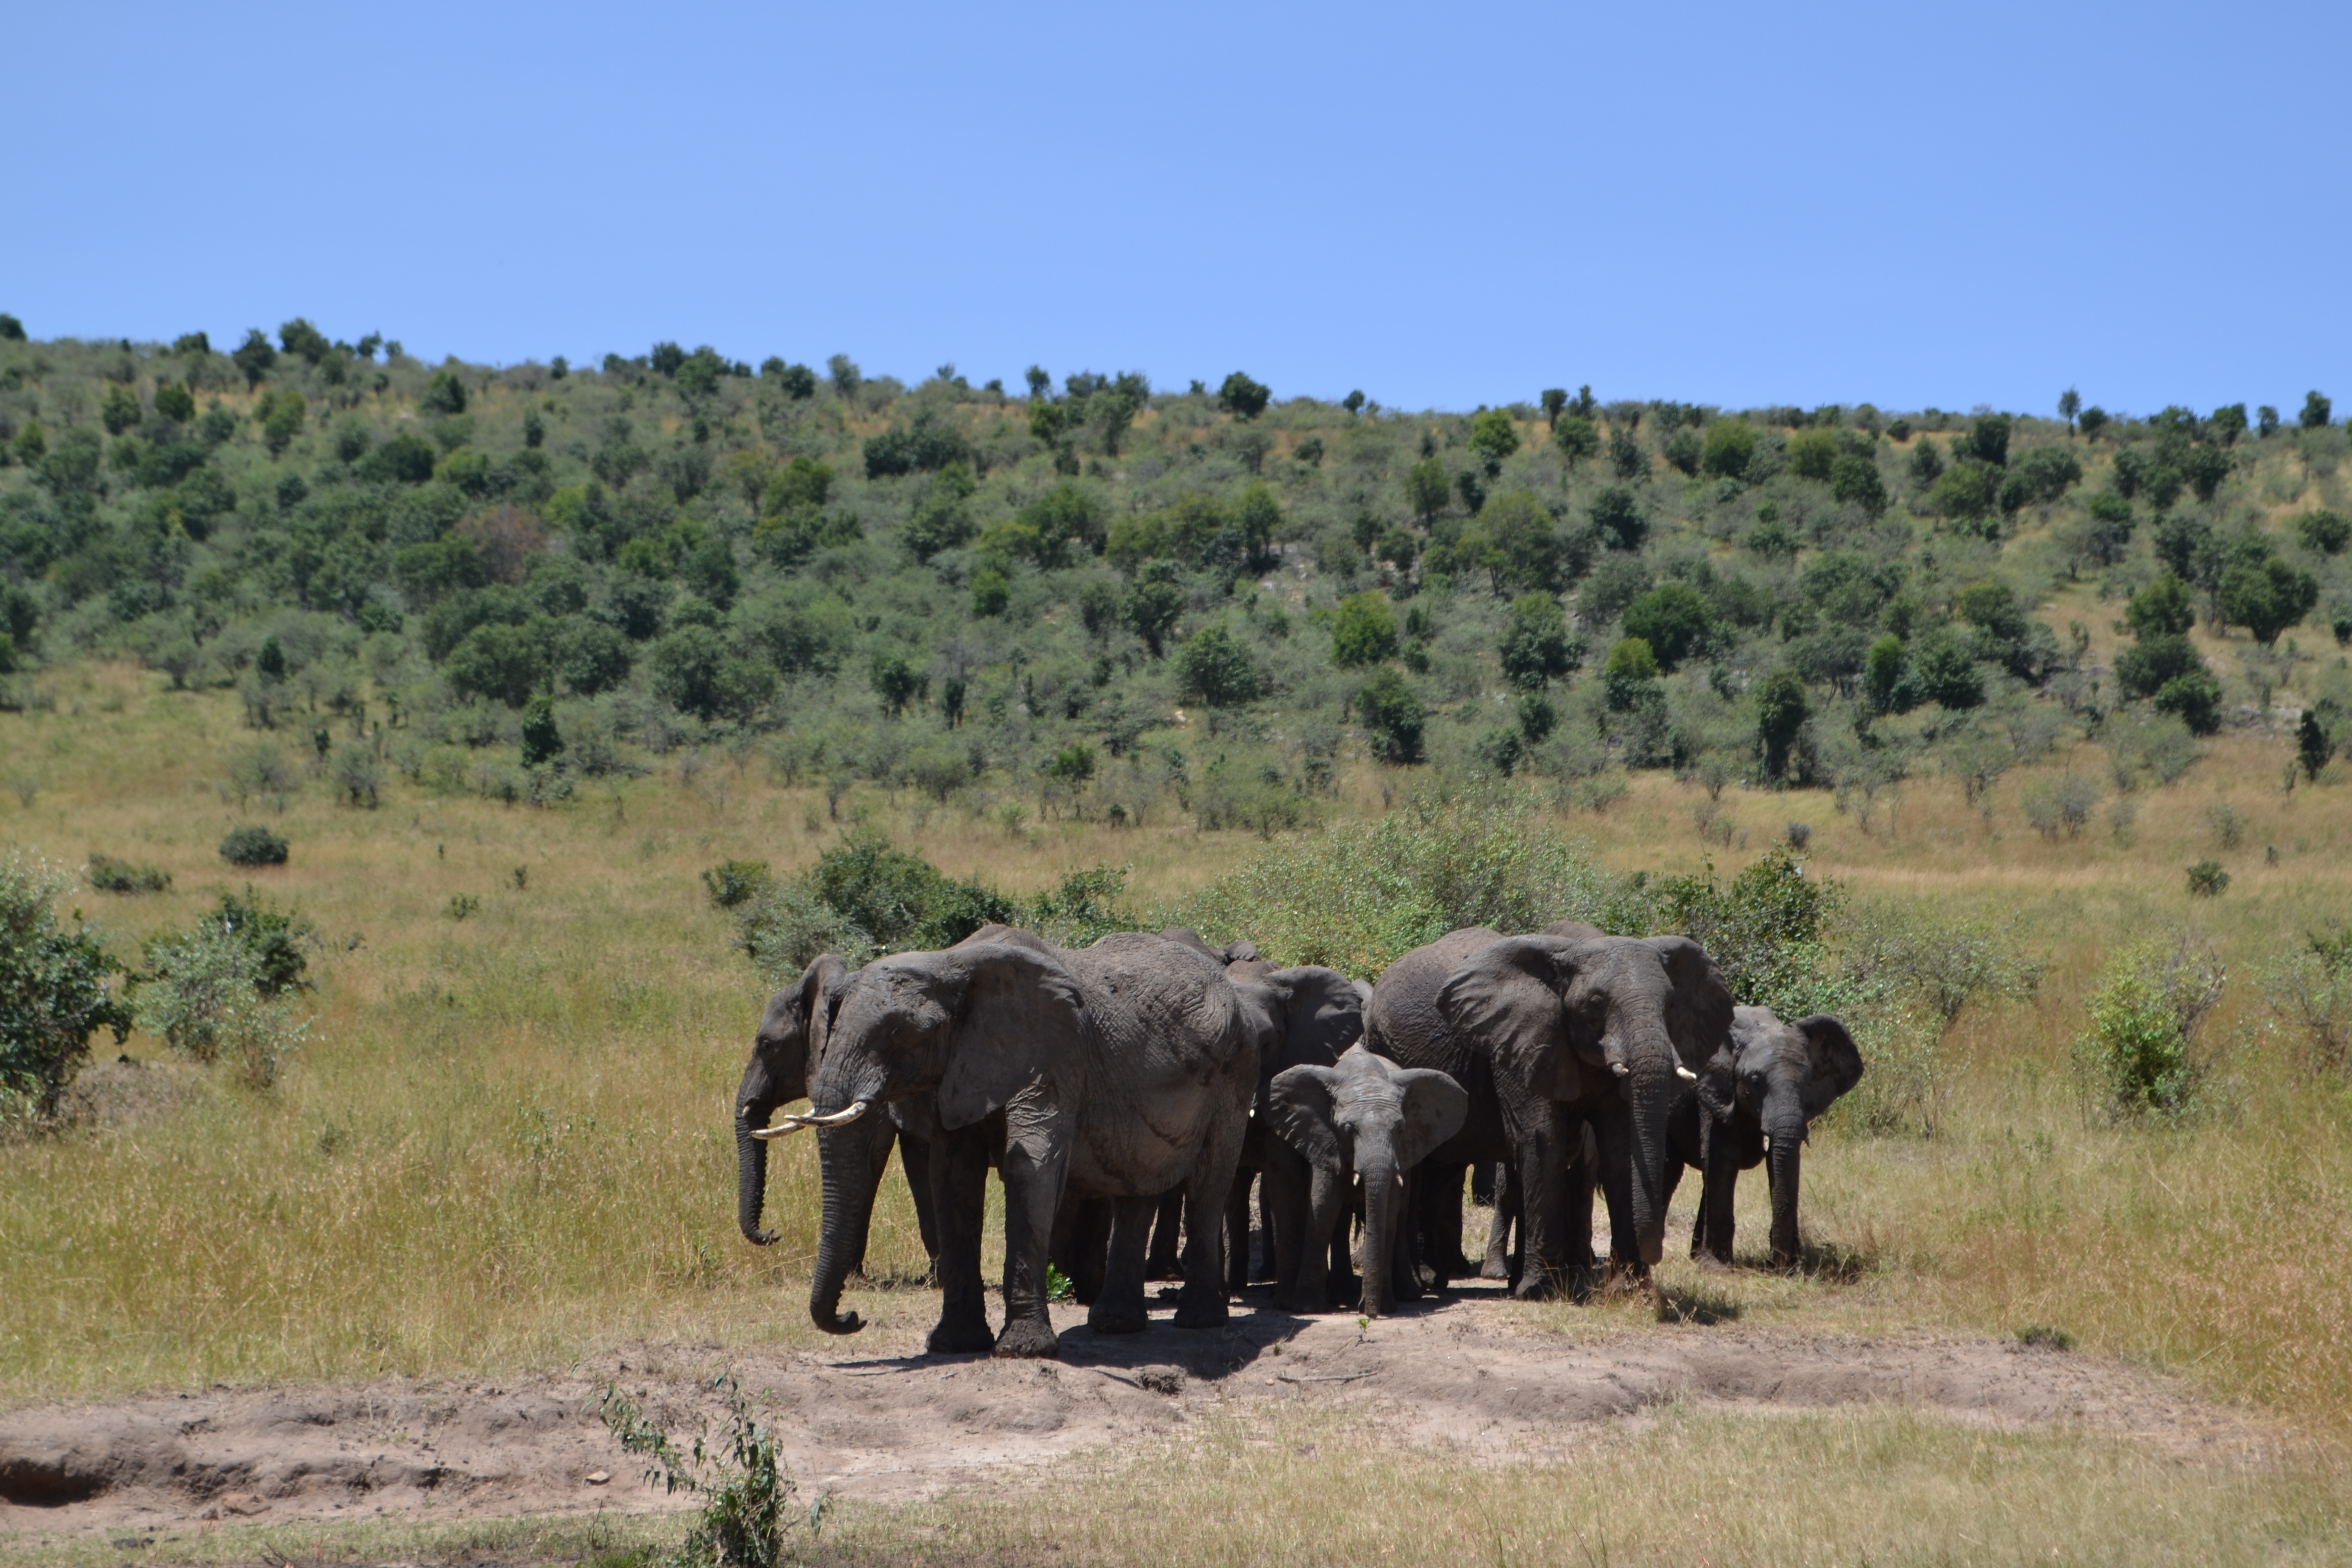 Elephants Protect the Herd